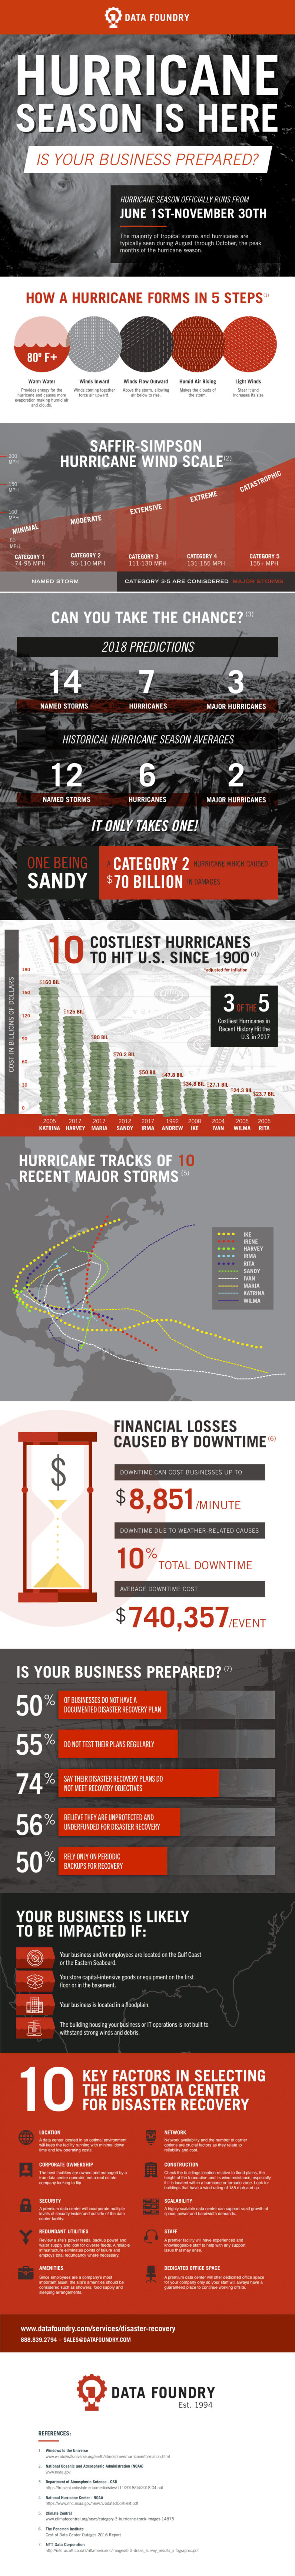 Hurricane infographic 2018 compressor